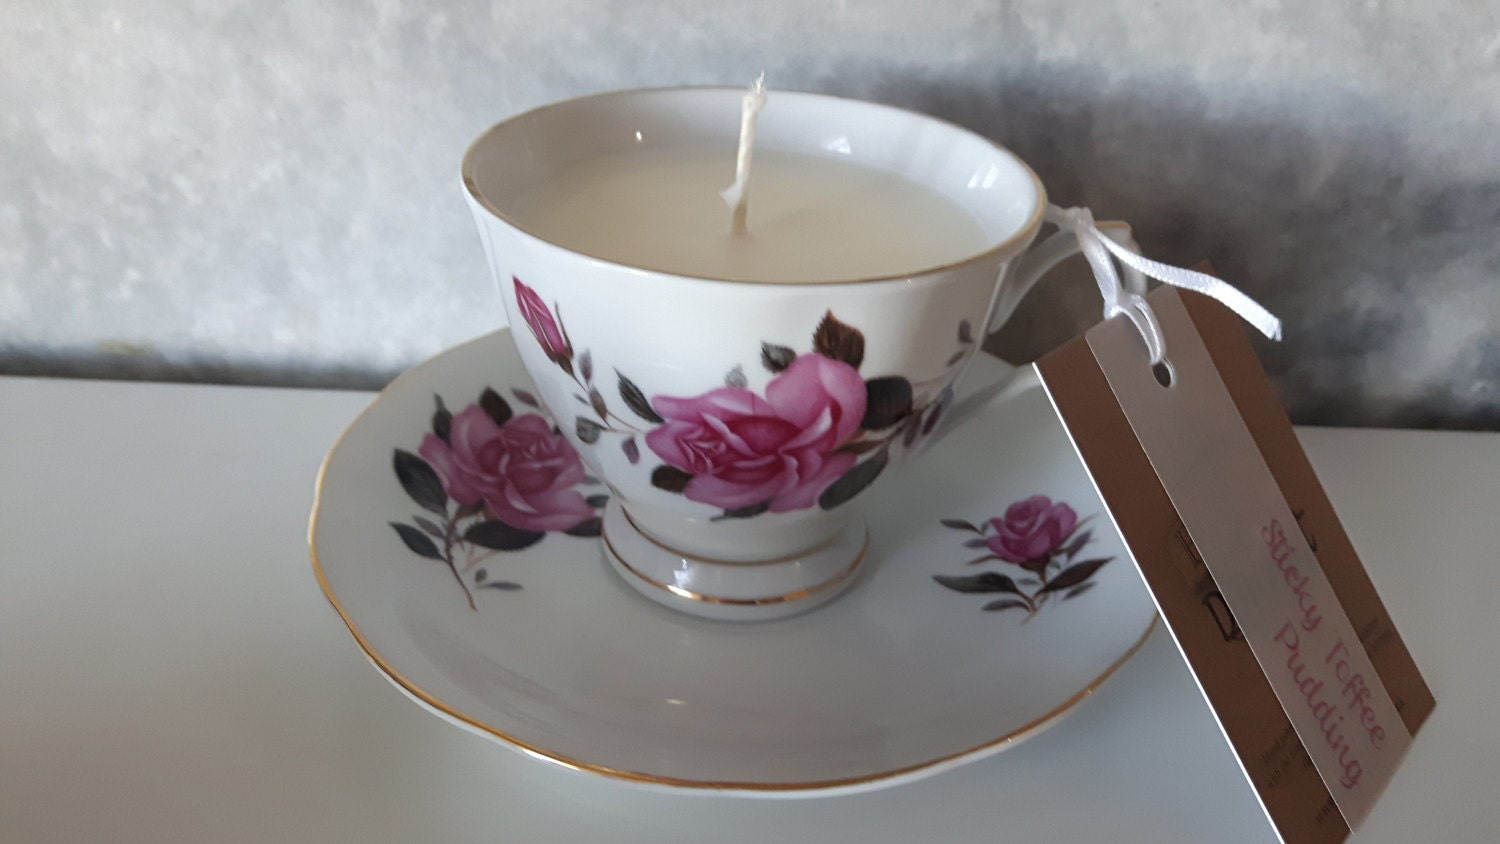 Hand poured scented soy wax vegan vintage tea cup candle, scented with sticky toffee pudding.